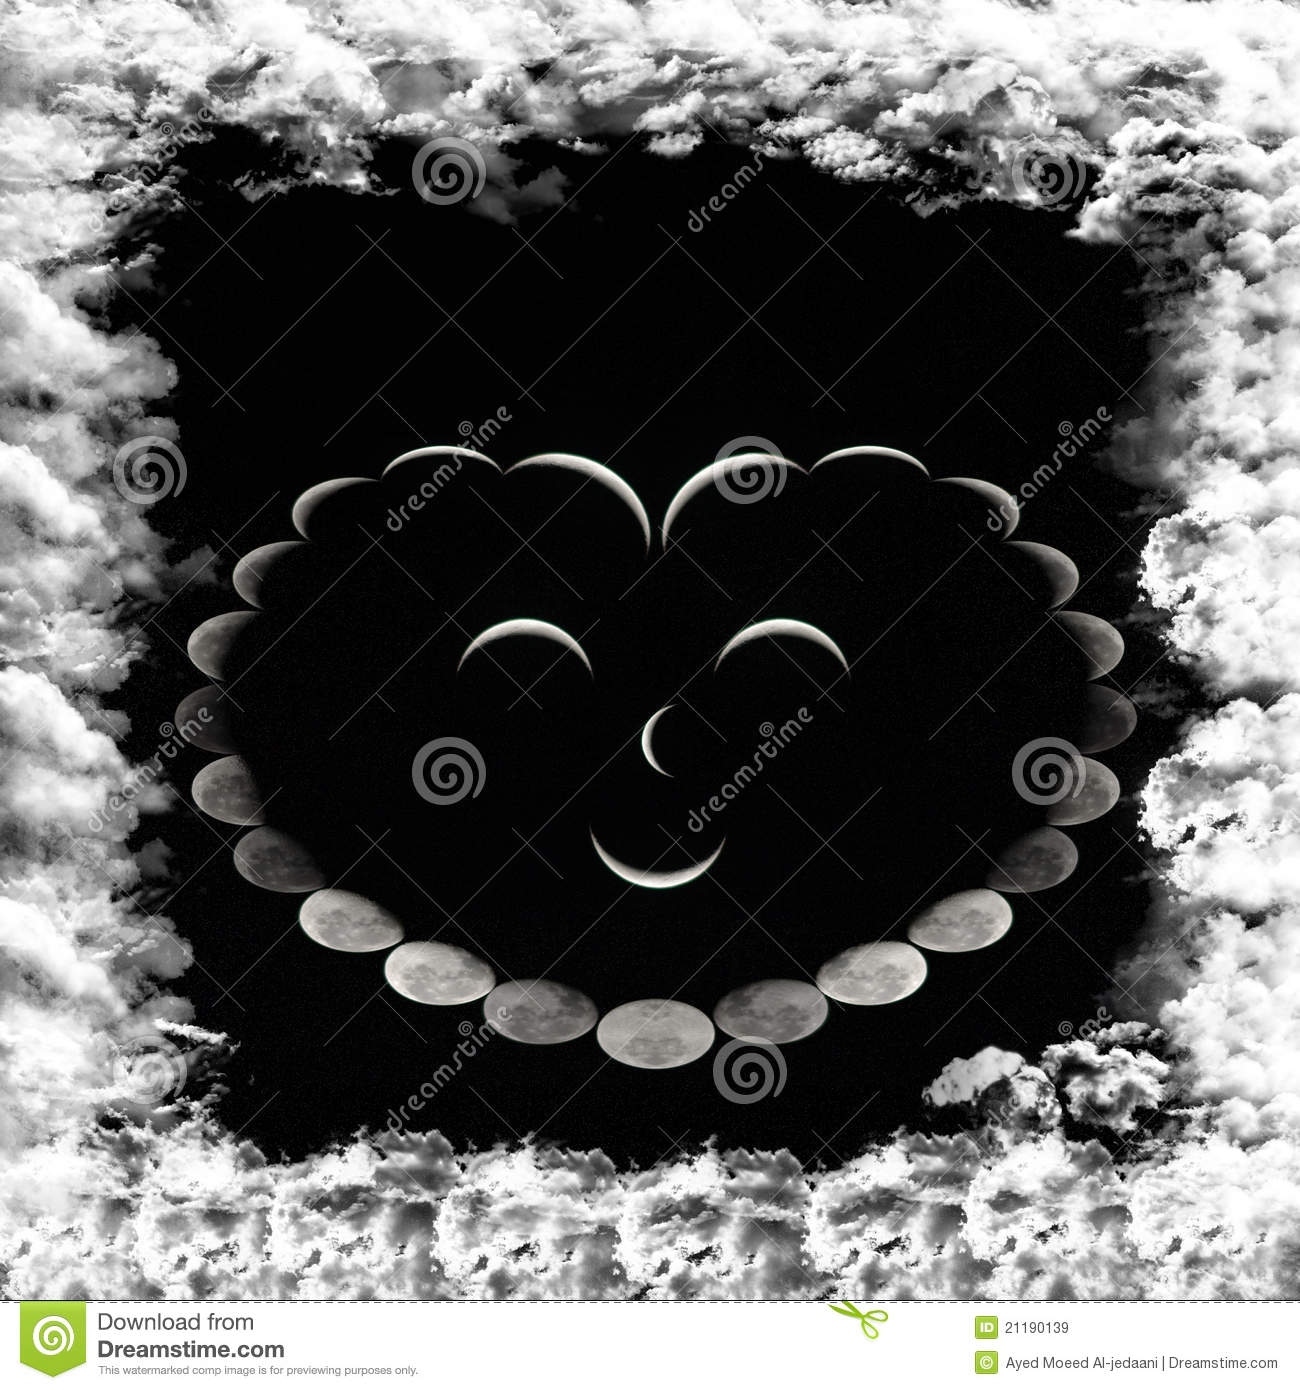 Smiling heart Of the phases of the moon